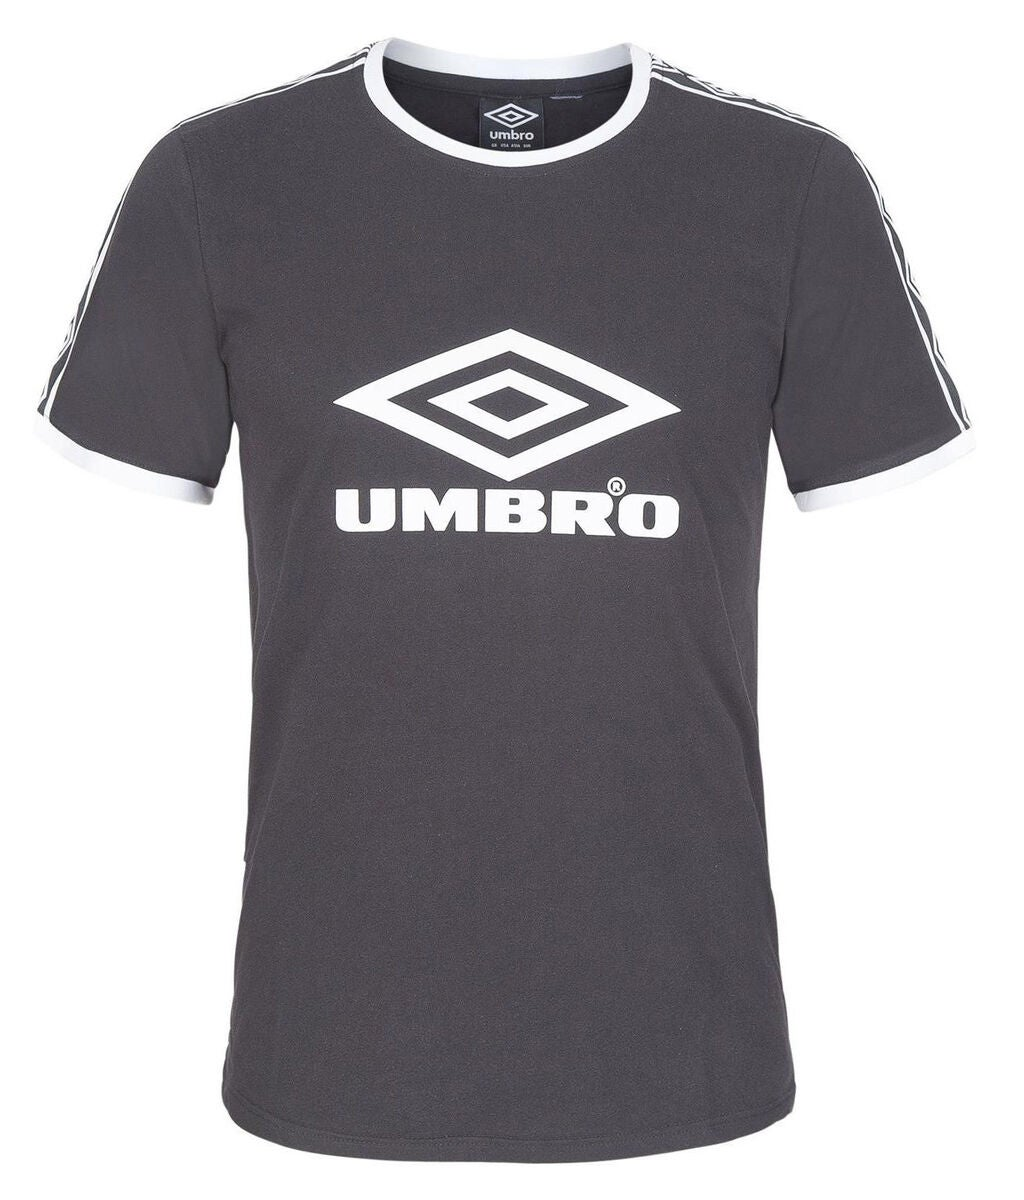 UMBRO Core X Legend T-shirt, Svart